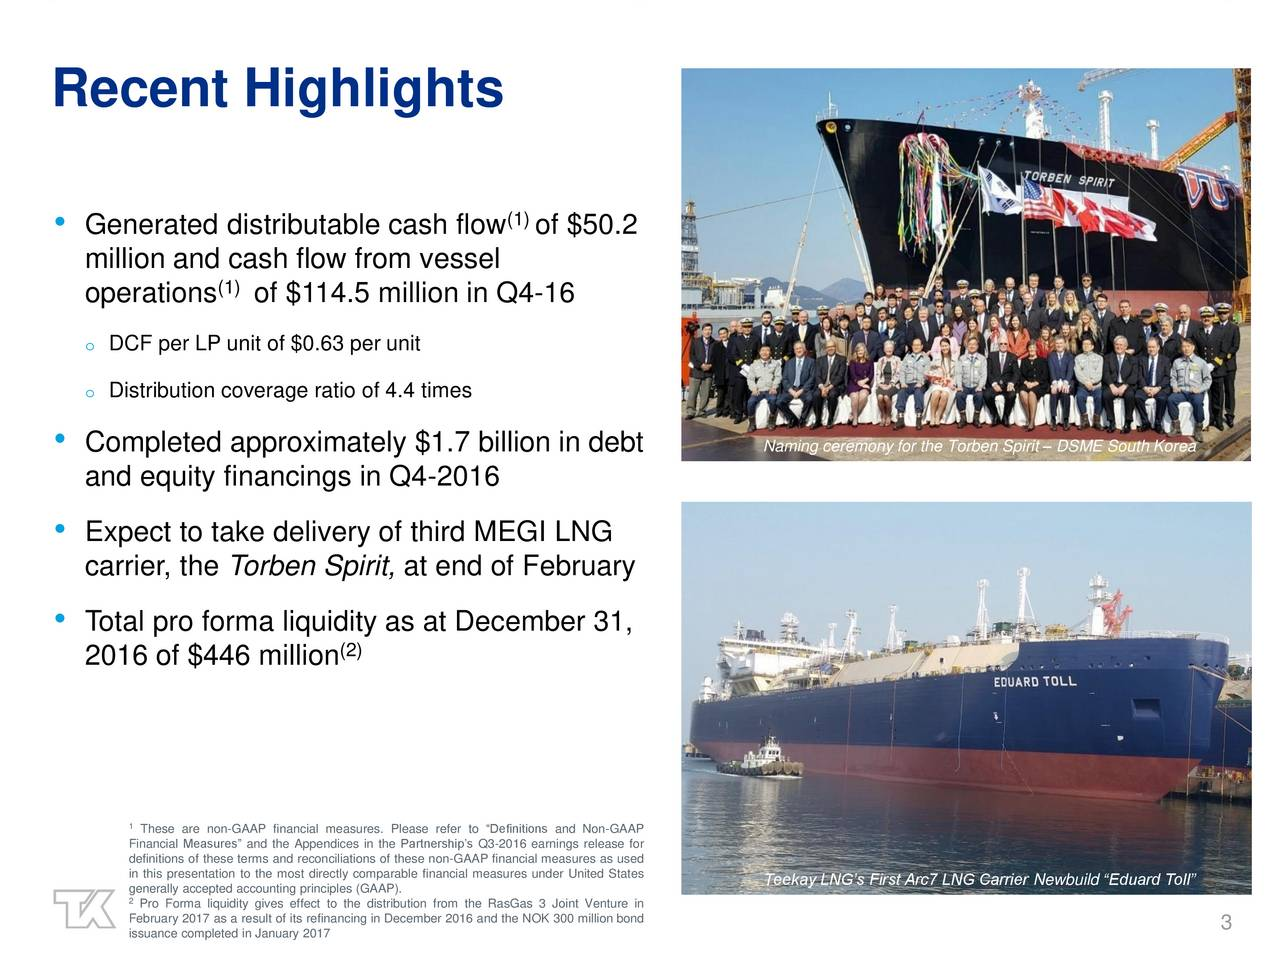 (1) Generated distributable cash flow of $50.2 million and cash flow from vessel (1) operations of $114.5 million in Q4-16 o DCF per LP unit of $0.63 per unit o Distribution coverage ratio of 4.4 times Completed approximately $1.7 billion in debt Naming ceremony for the Torben Spirit  DSME South Korea and equity financings in Q4-2016 Expect to take delivery of third MEGI LNG carrier, the Torben Spirit, at end of February Total pro forma liquidity as at December 31, 2016 of $446 million (2) 1These are non-GAAP financial measures. Please refer to Definitions and Non-GAAP Financial Measures and the Appendices in the Partnerships Q3-2016 earnings release for in this presentation to the most directly comparable financial measures under United States 2enerally accepted accounting principles (GAAP). Teekay LNGs First Arc7 LNG Carrier Newbuild Eduard Toll February 2017 as a result of its refinancing in December 2016 and the NOK 300 million bond issuance completed in January 2017 3